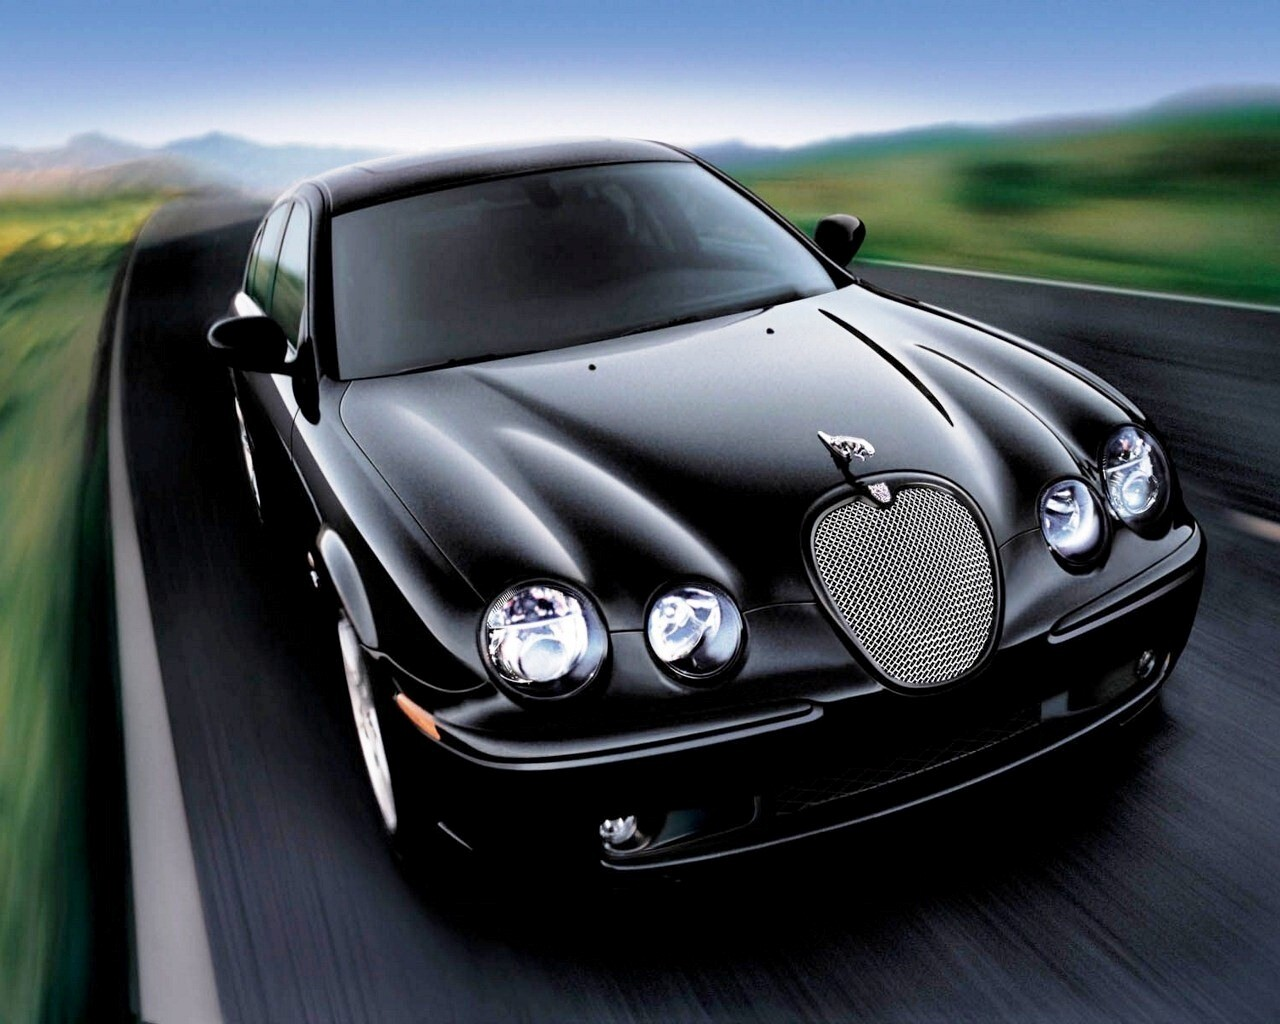 Black Jaguar Cars Images Black Jaguar on Road Added On